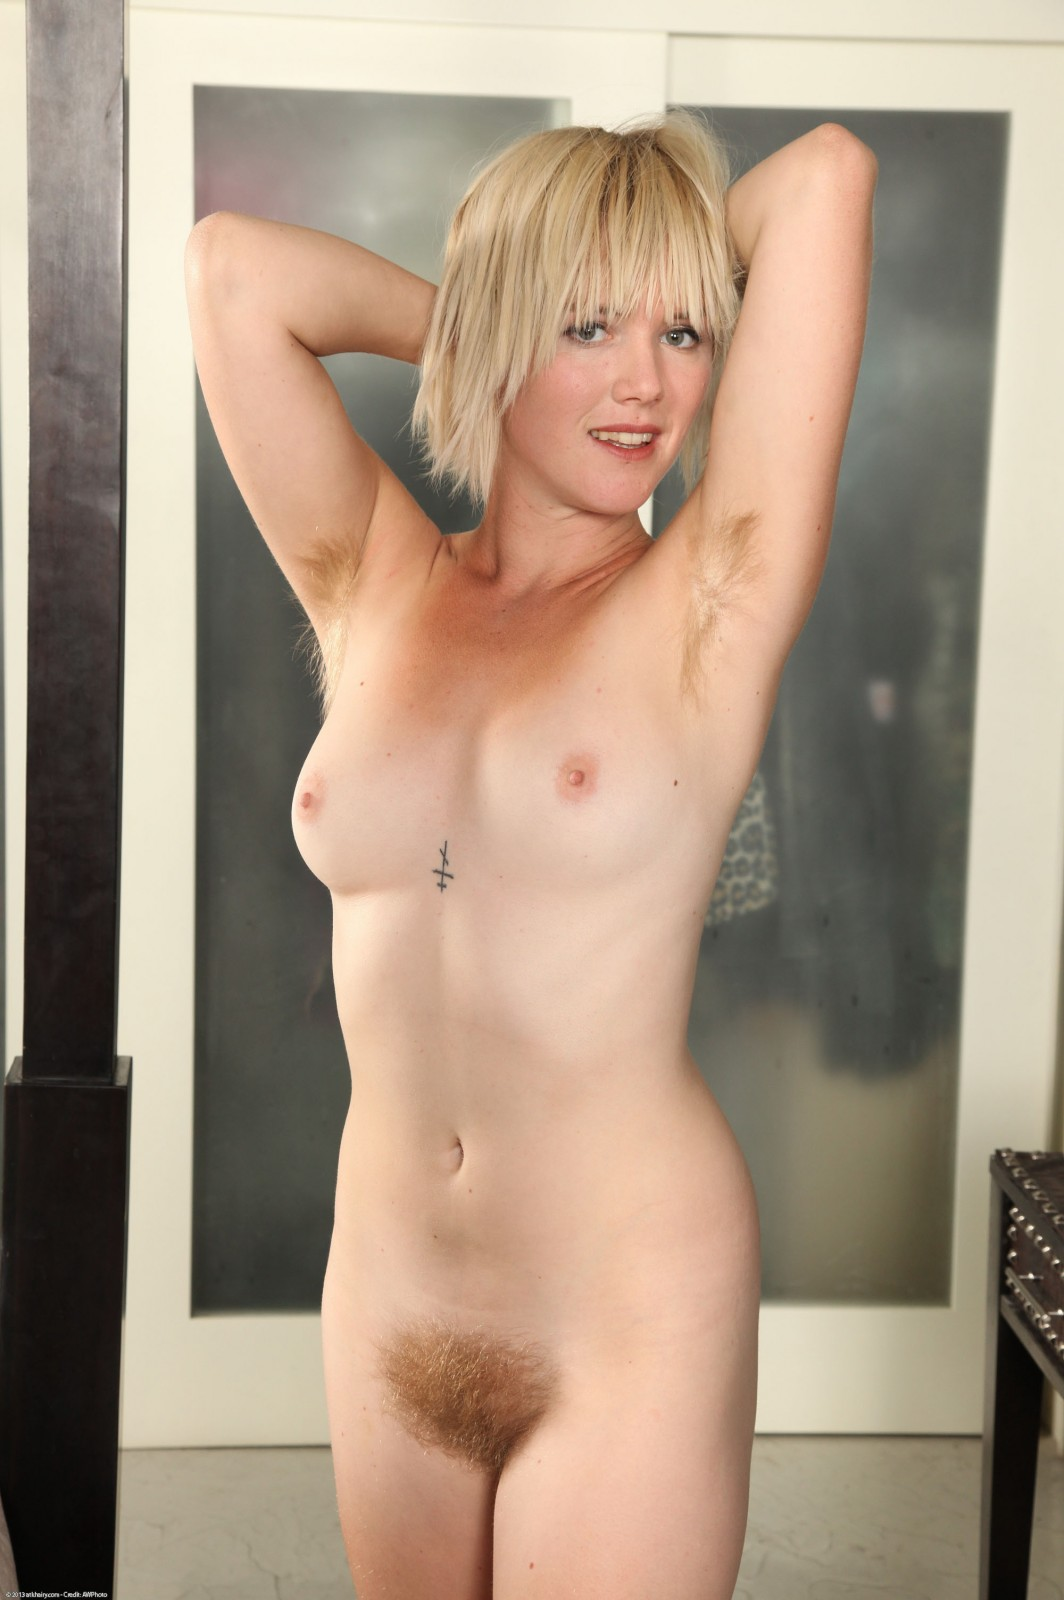 ATK Hairy > Anna shows off her long pit hair and blonde furry bush and legs  > Models: Anna&#8221;/></a></p> <h2>ATK Natural Hairy 9</h2> <p><iframe height=481 width=608 src=